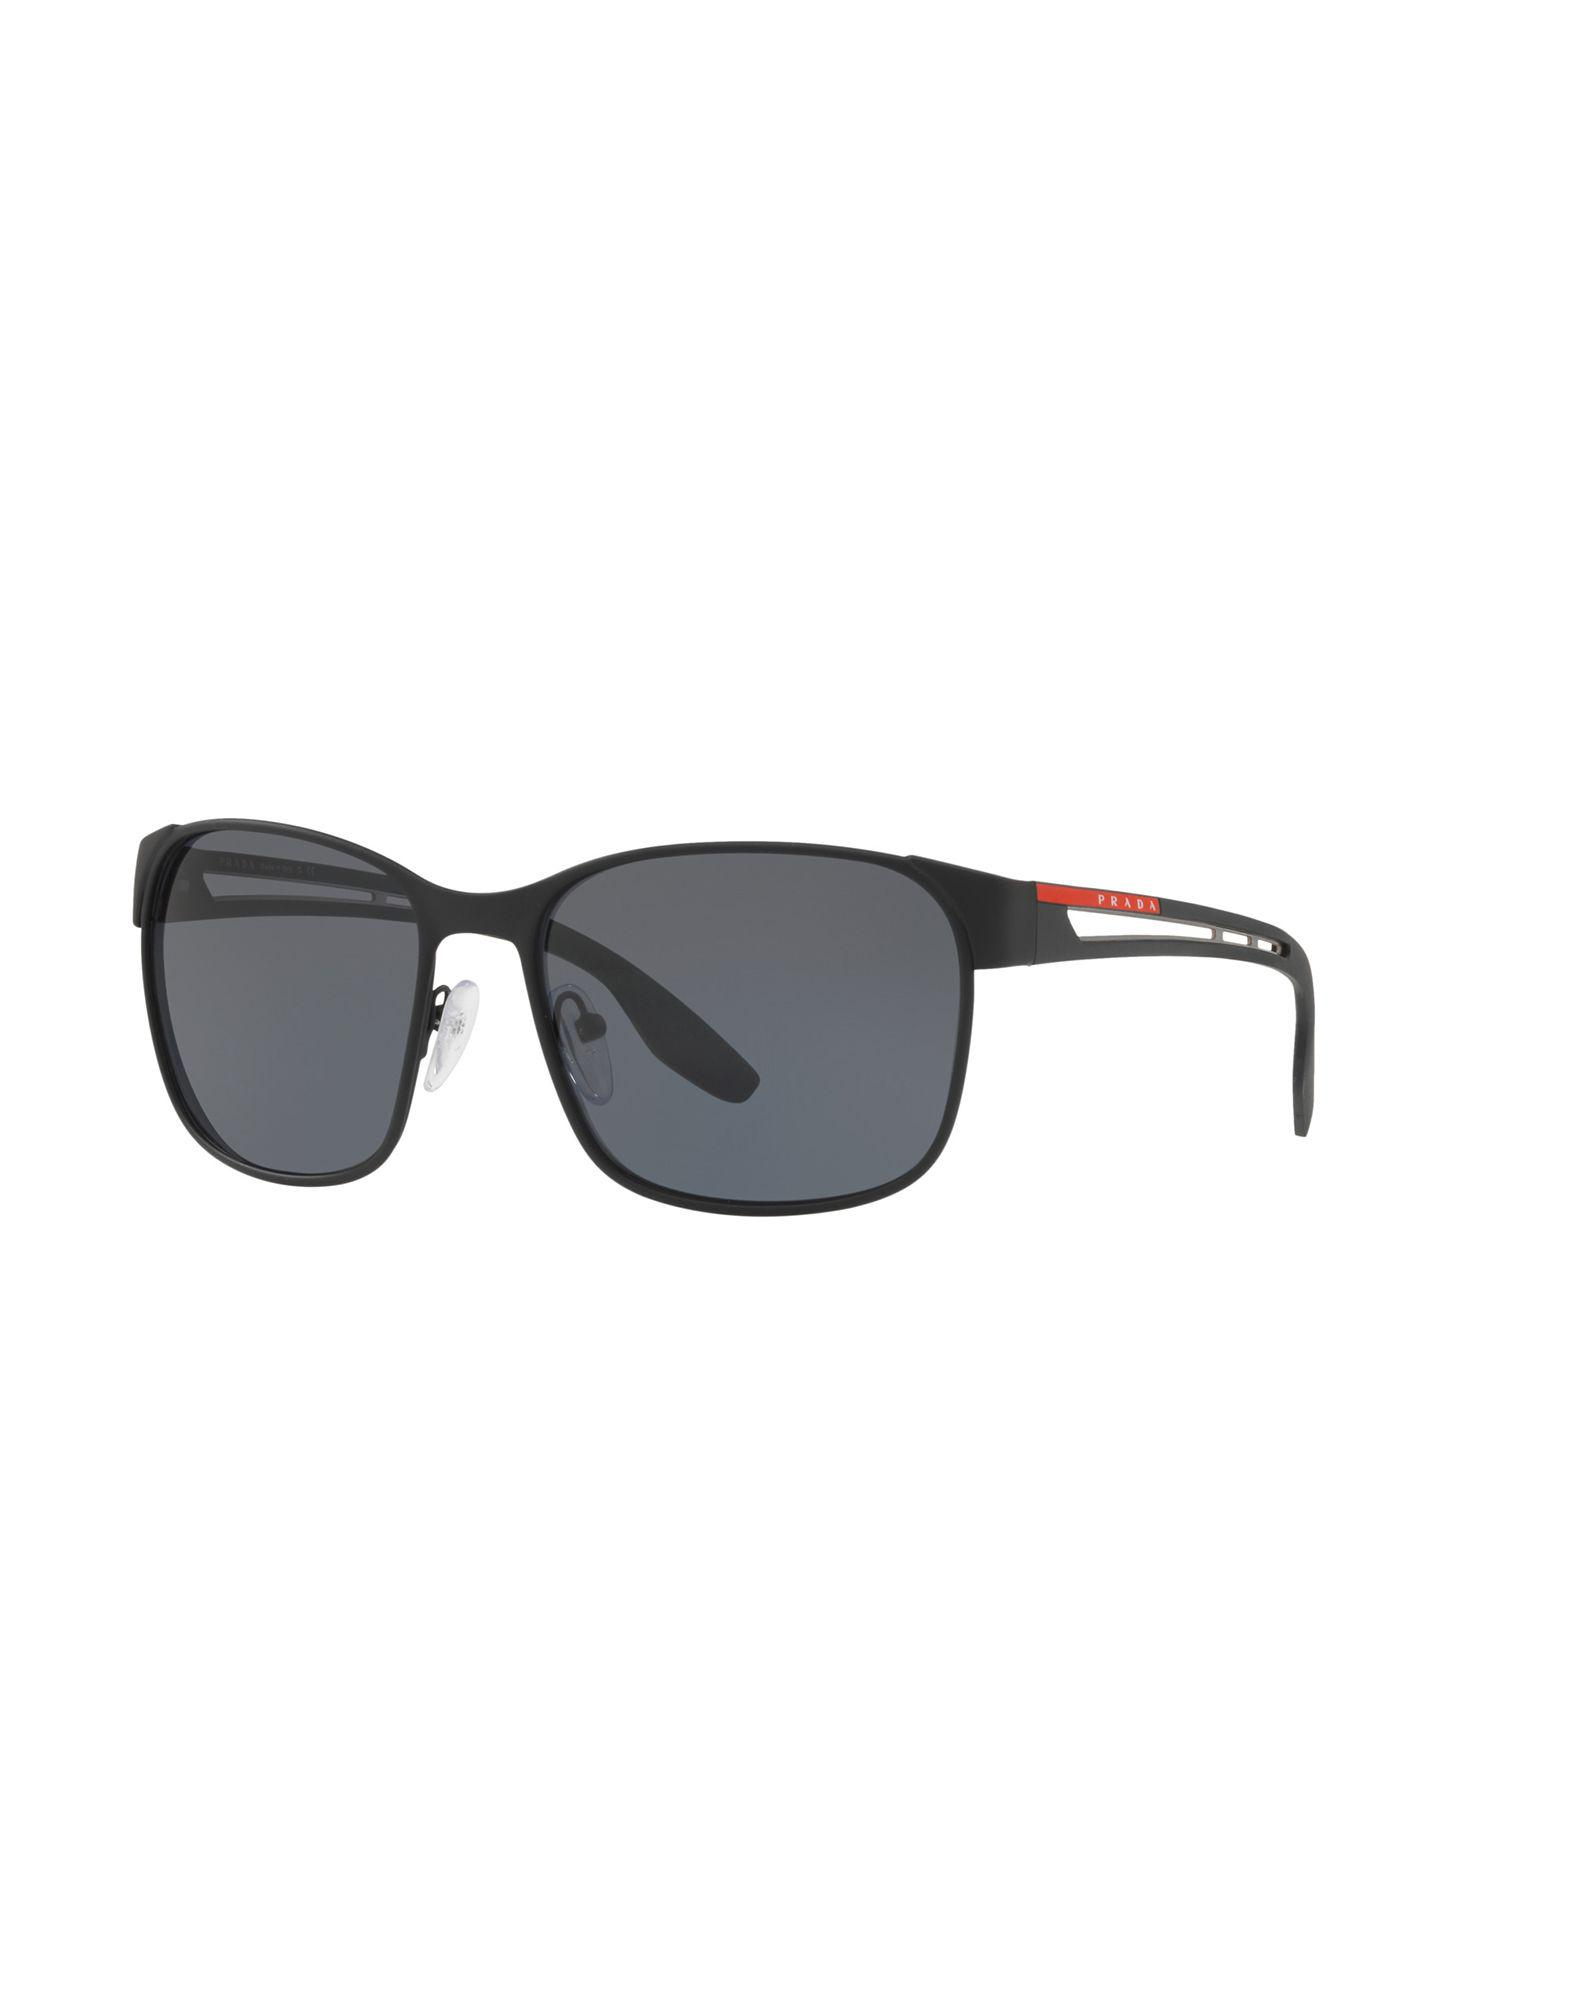 2bcefc0fae48 Prada - Black Sunglasses for Men - Lyst. View fullscreen